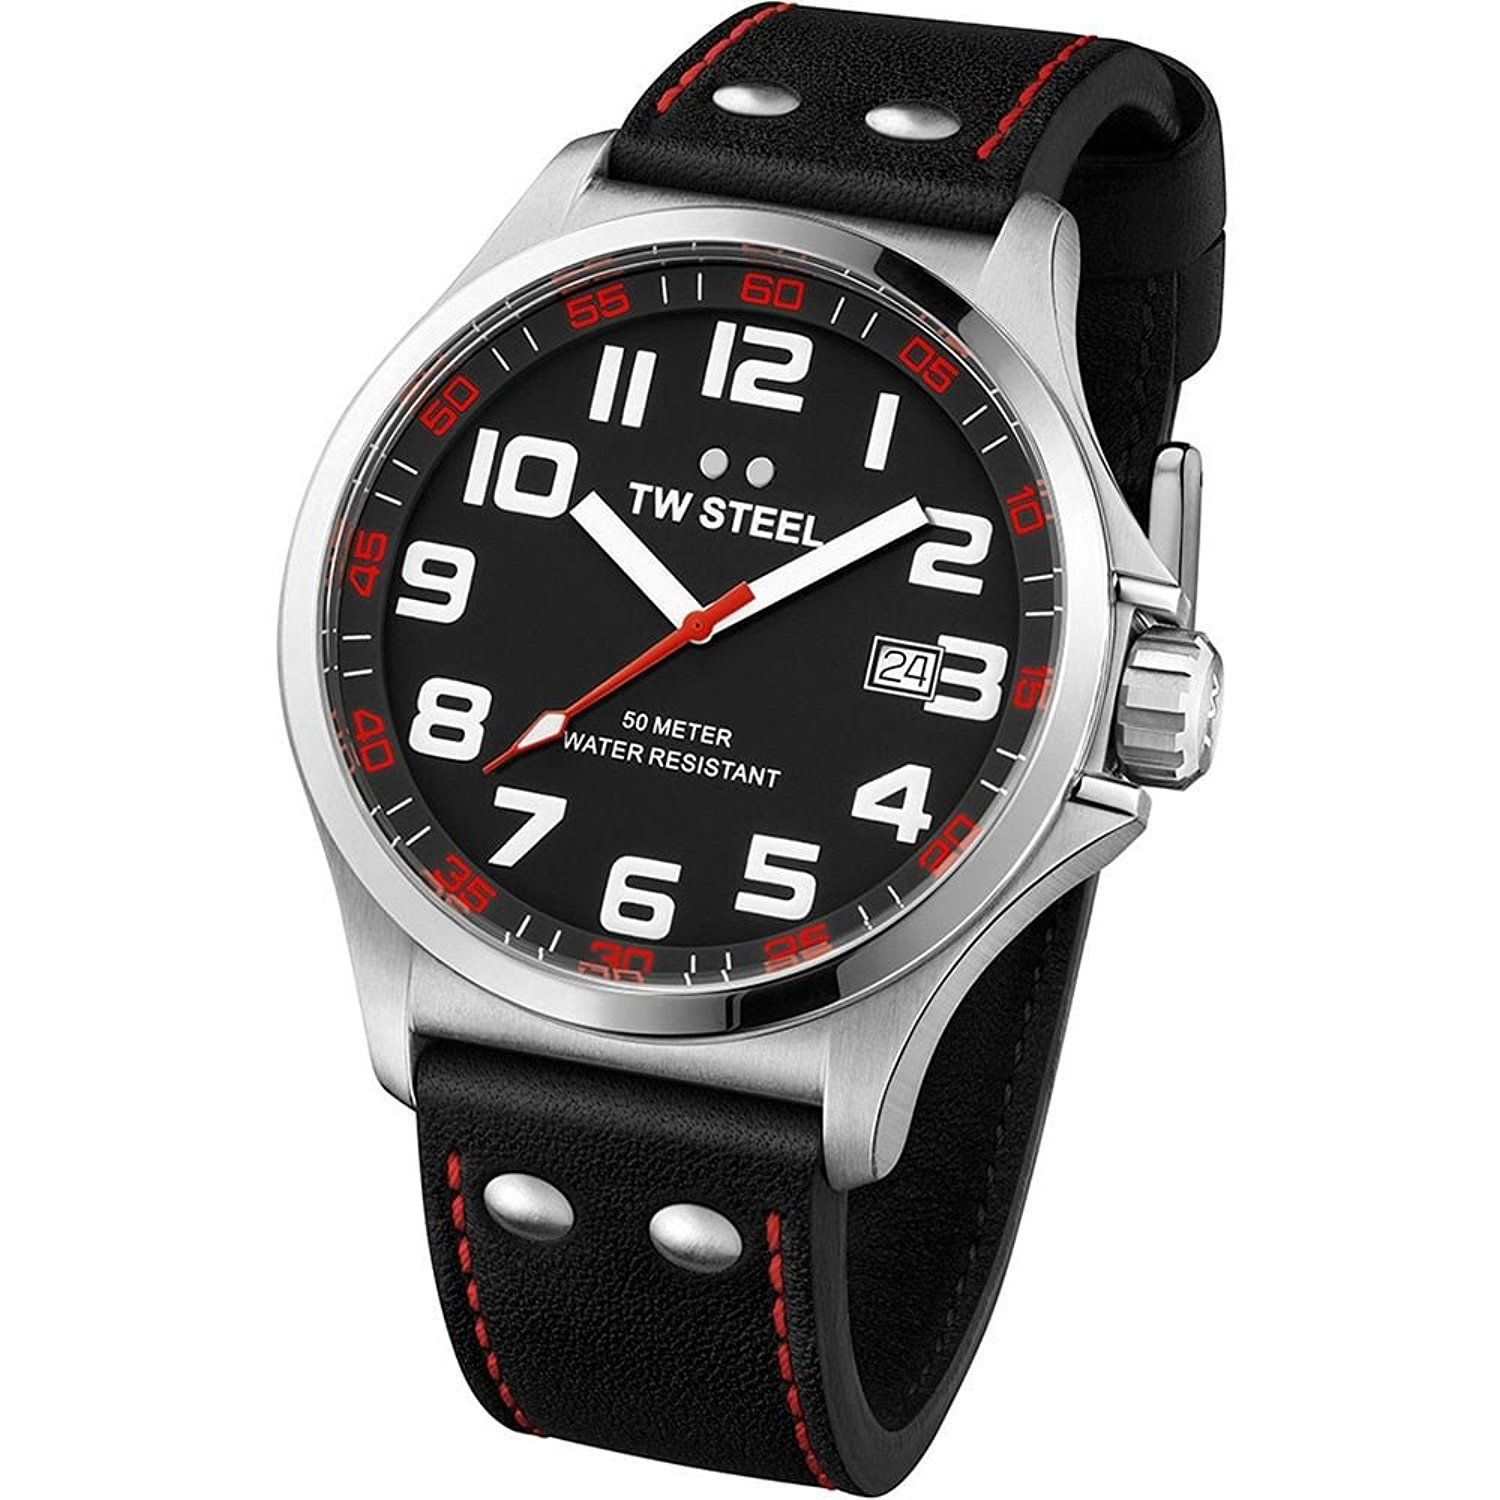 TW Steel TW411 Pilot Black Leather Strap with Red Stitches